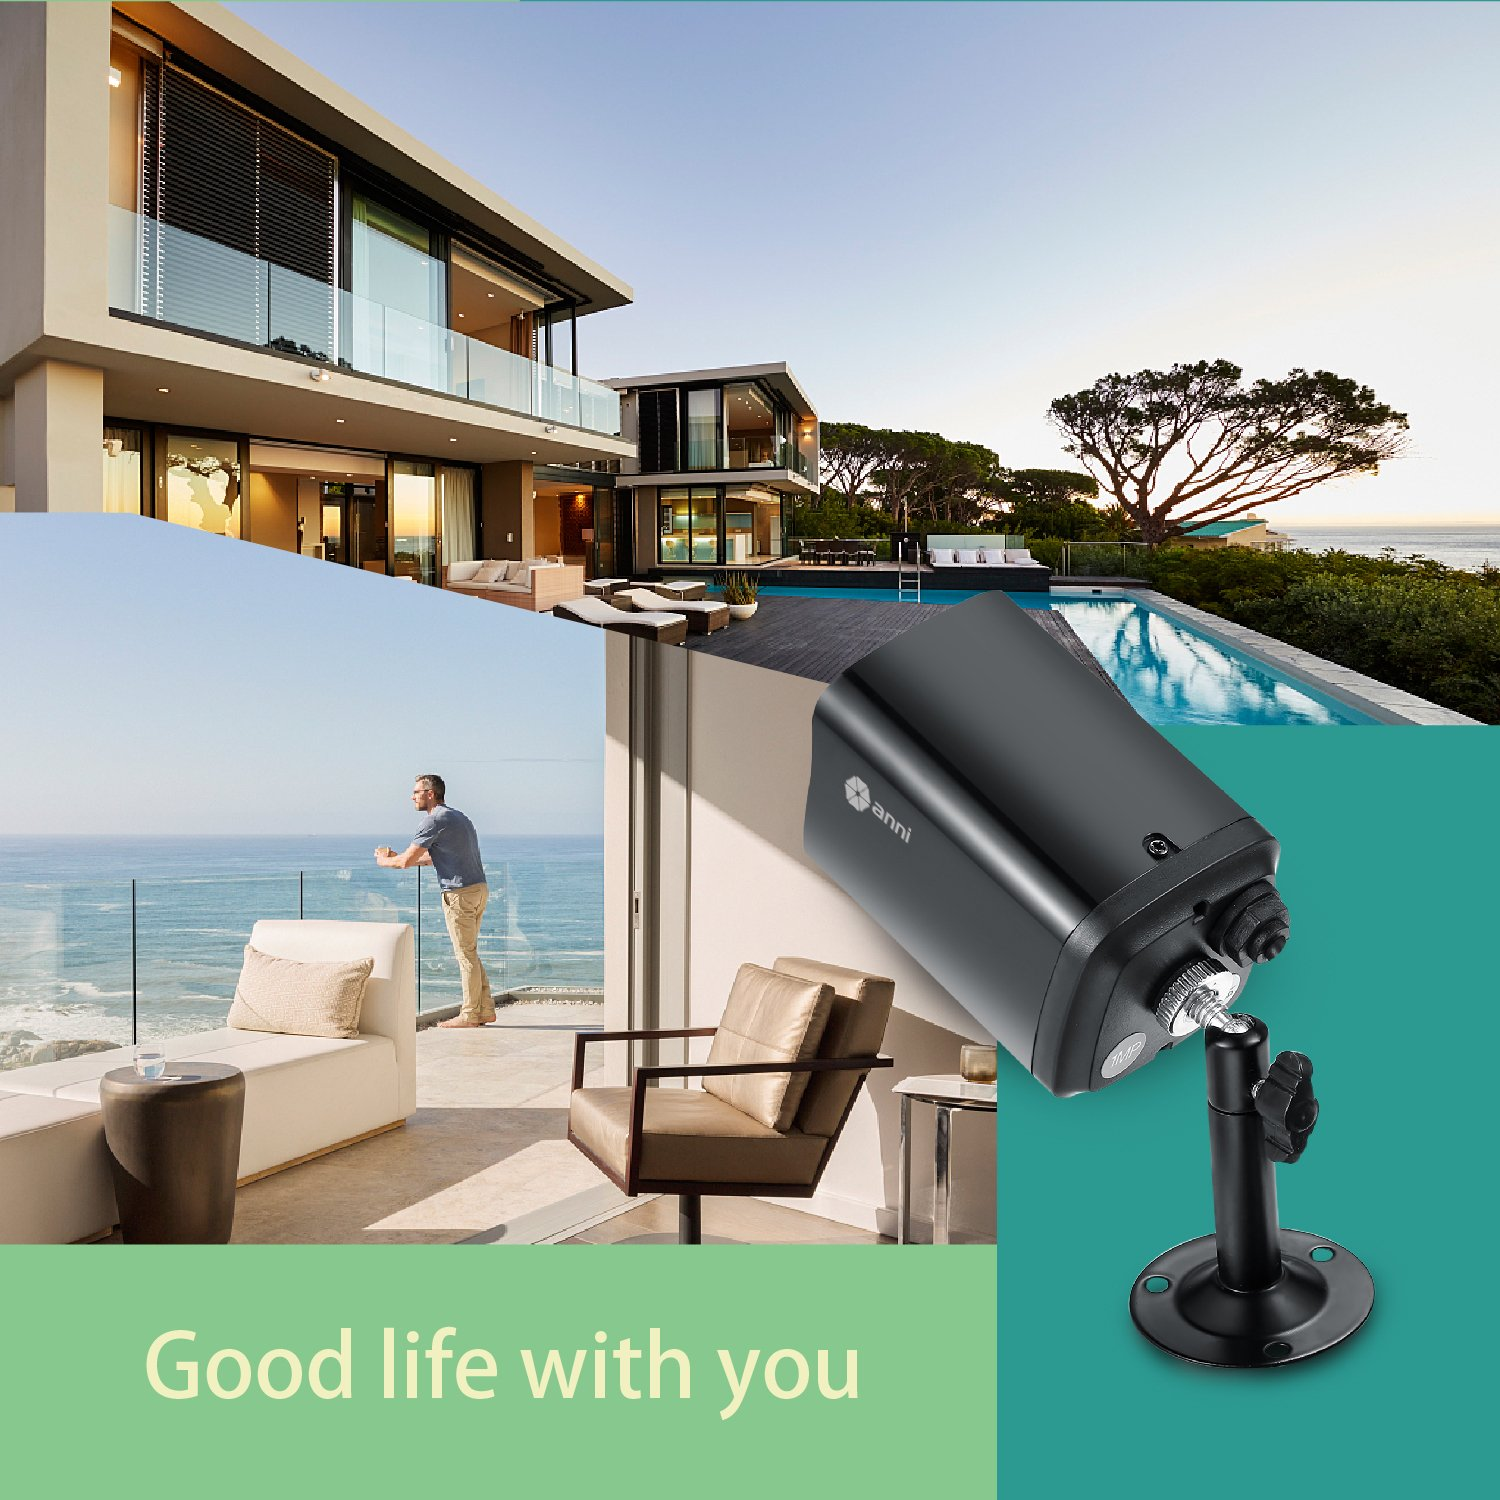 anni 4CH DVR 1080N Video Security System 4PCS 1500TVL Weatherproof Outdoor Cameras Surveillance Kit, Free iOS Android APP, Motion Detection Email Alert, IR Night Vision 65FT -No Hard Drive by ELEC (Image #6)